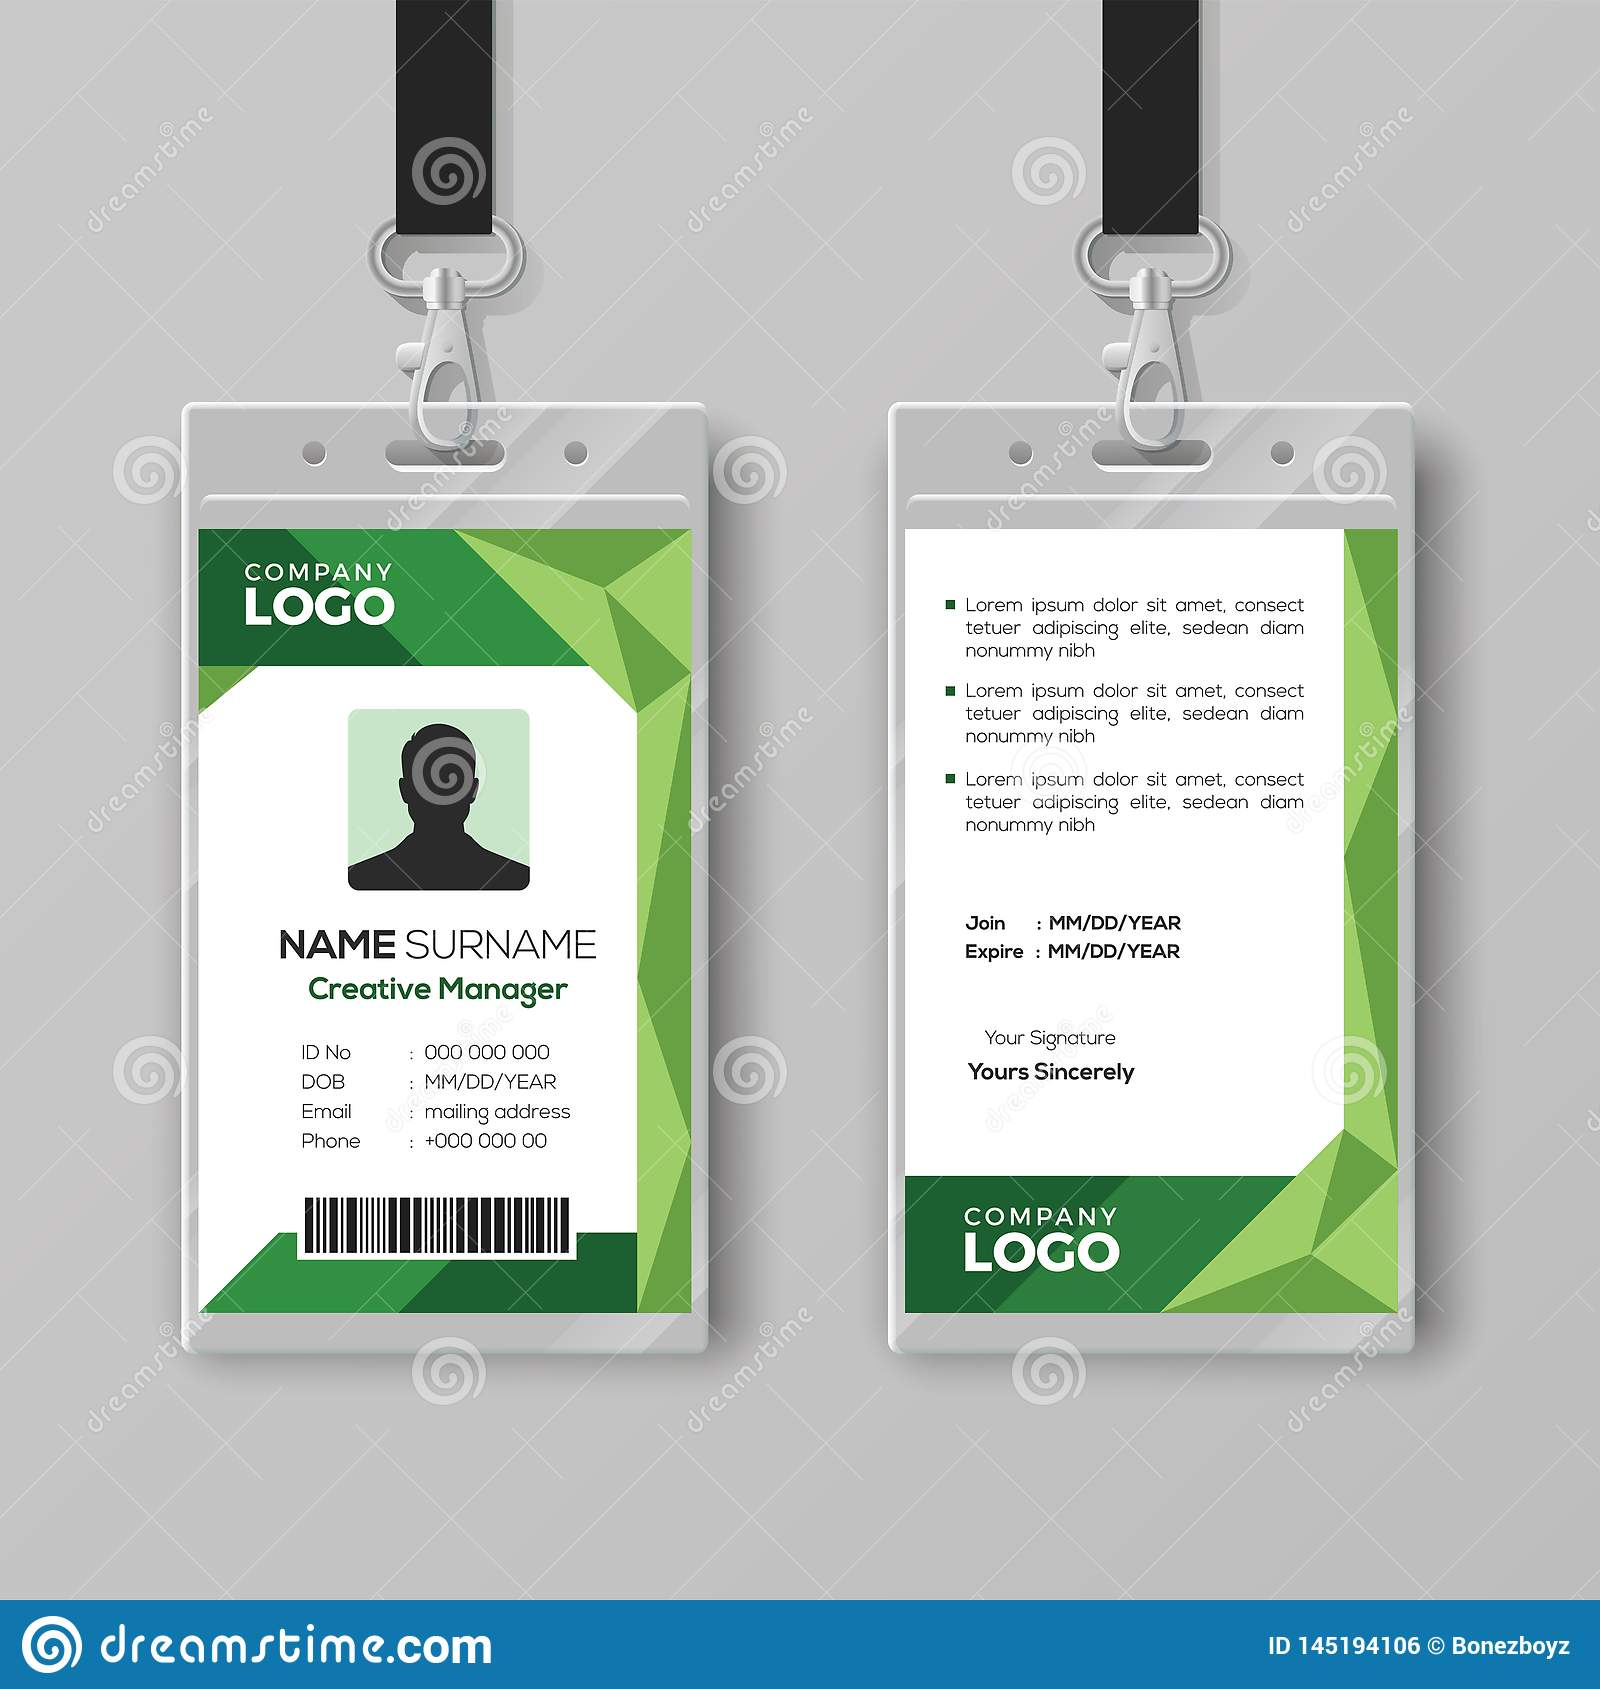 Corporate ID Card Template With Abstract Green Background Stock Within Template For Id Card Free Download